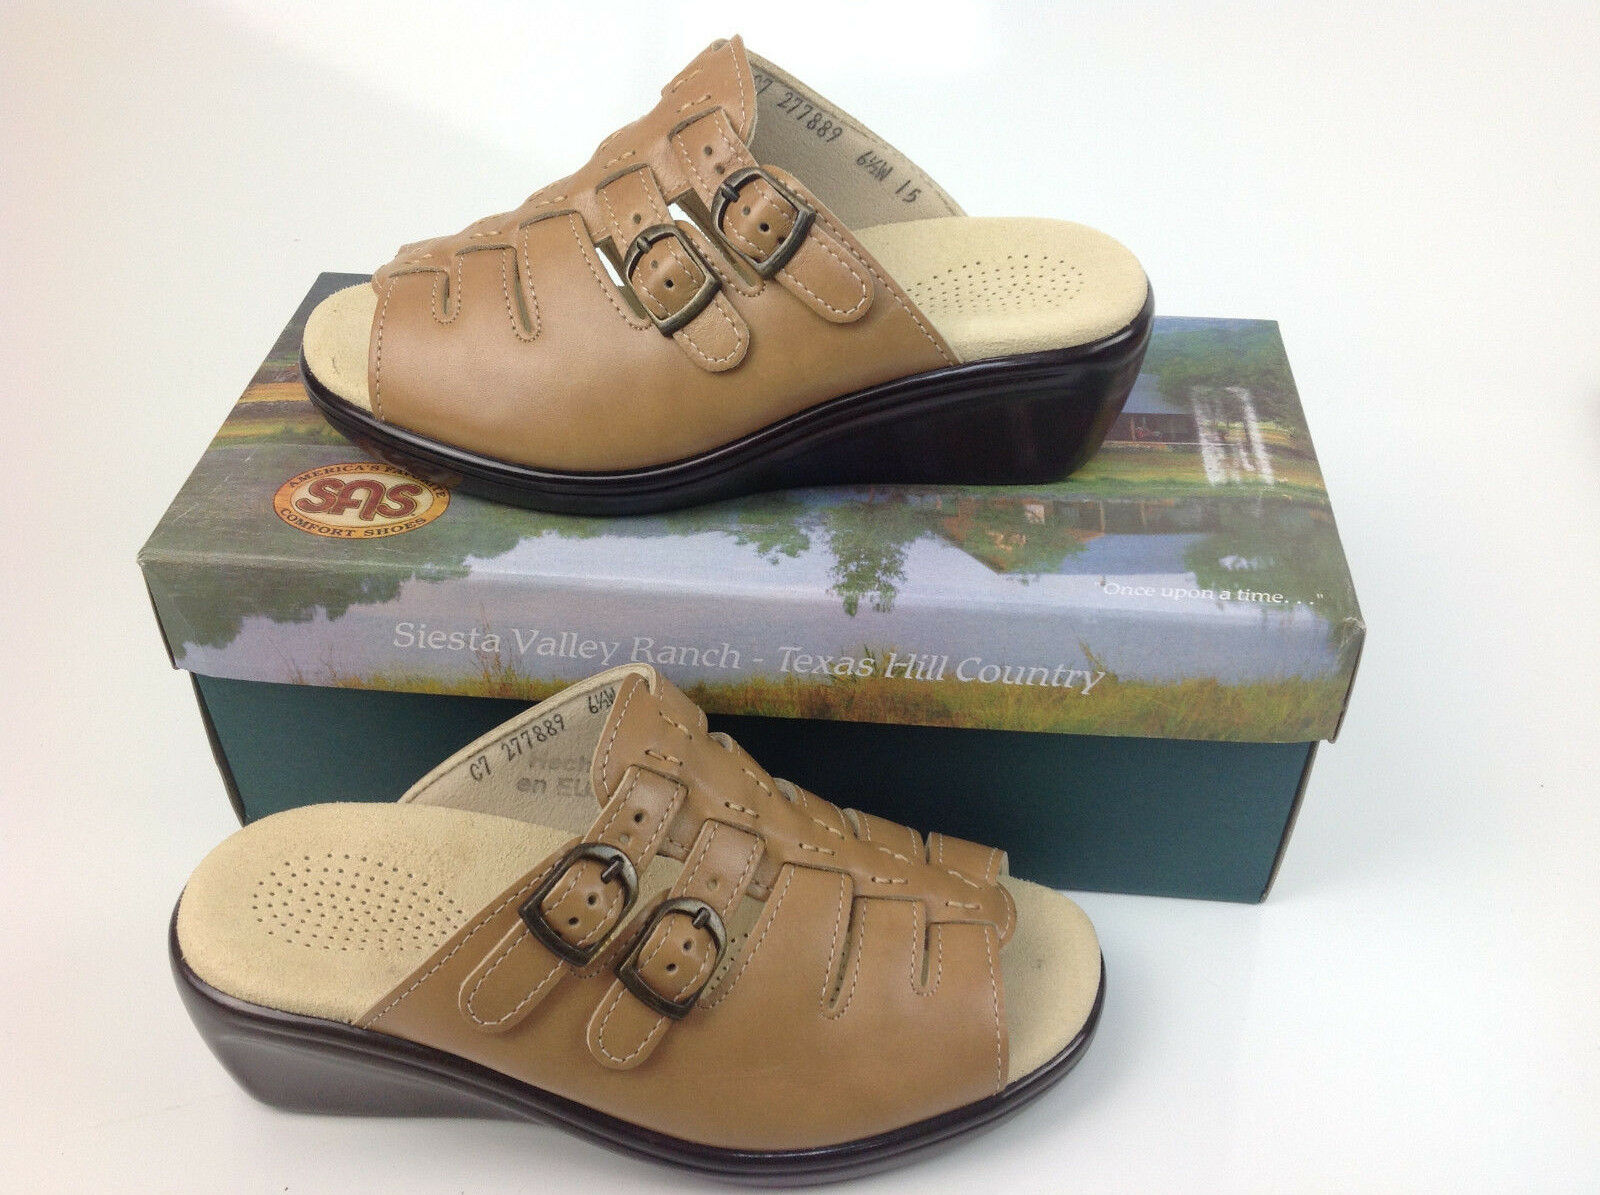 123.00 SAS SAN ANTONIO scarpeMAKERS TANGO SLIDE SANDAL WHEAT Dimensione 9.5 N